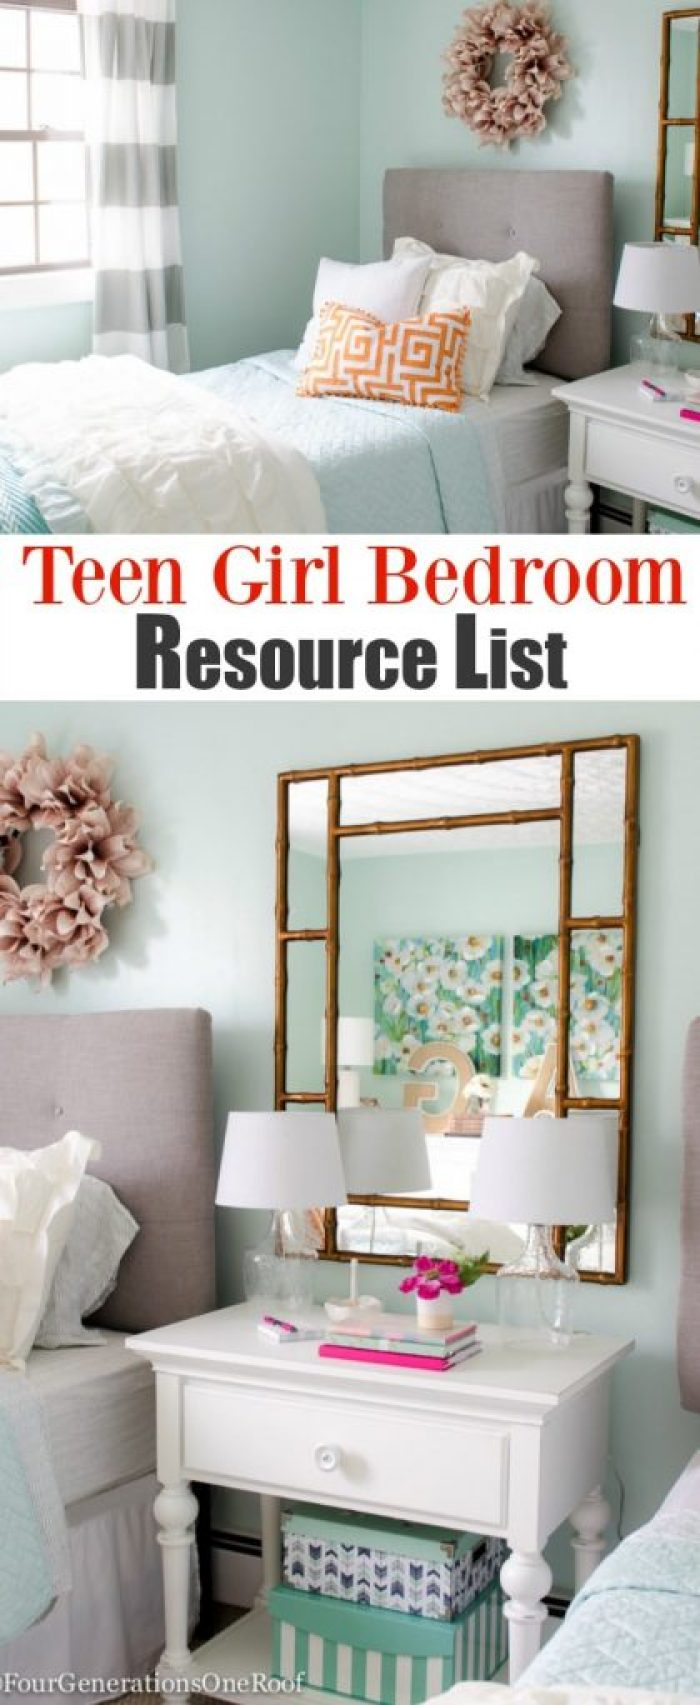 Girl bedroom makeover resource list